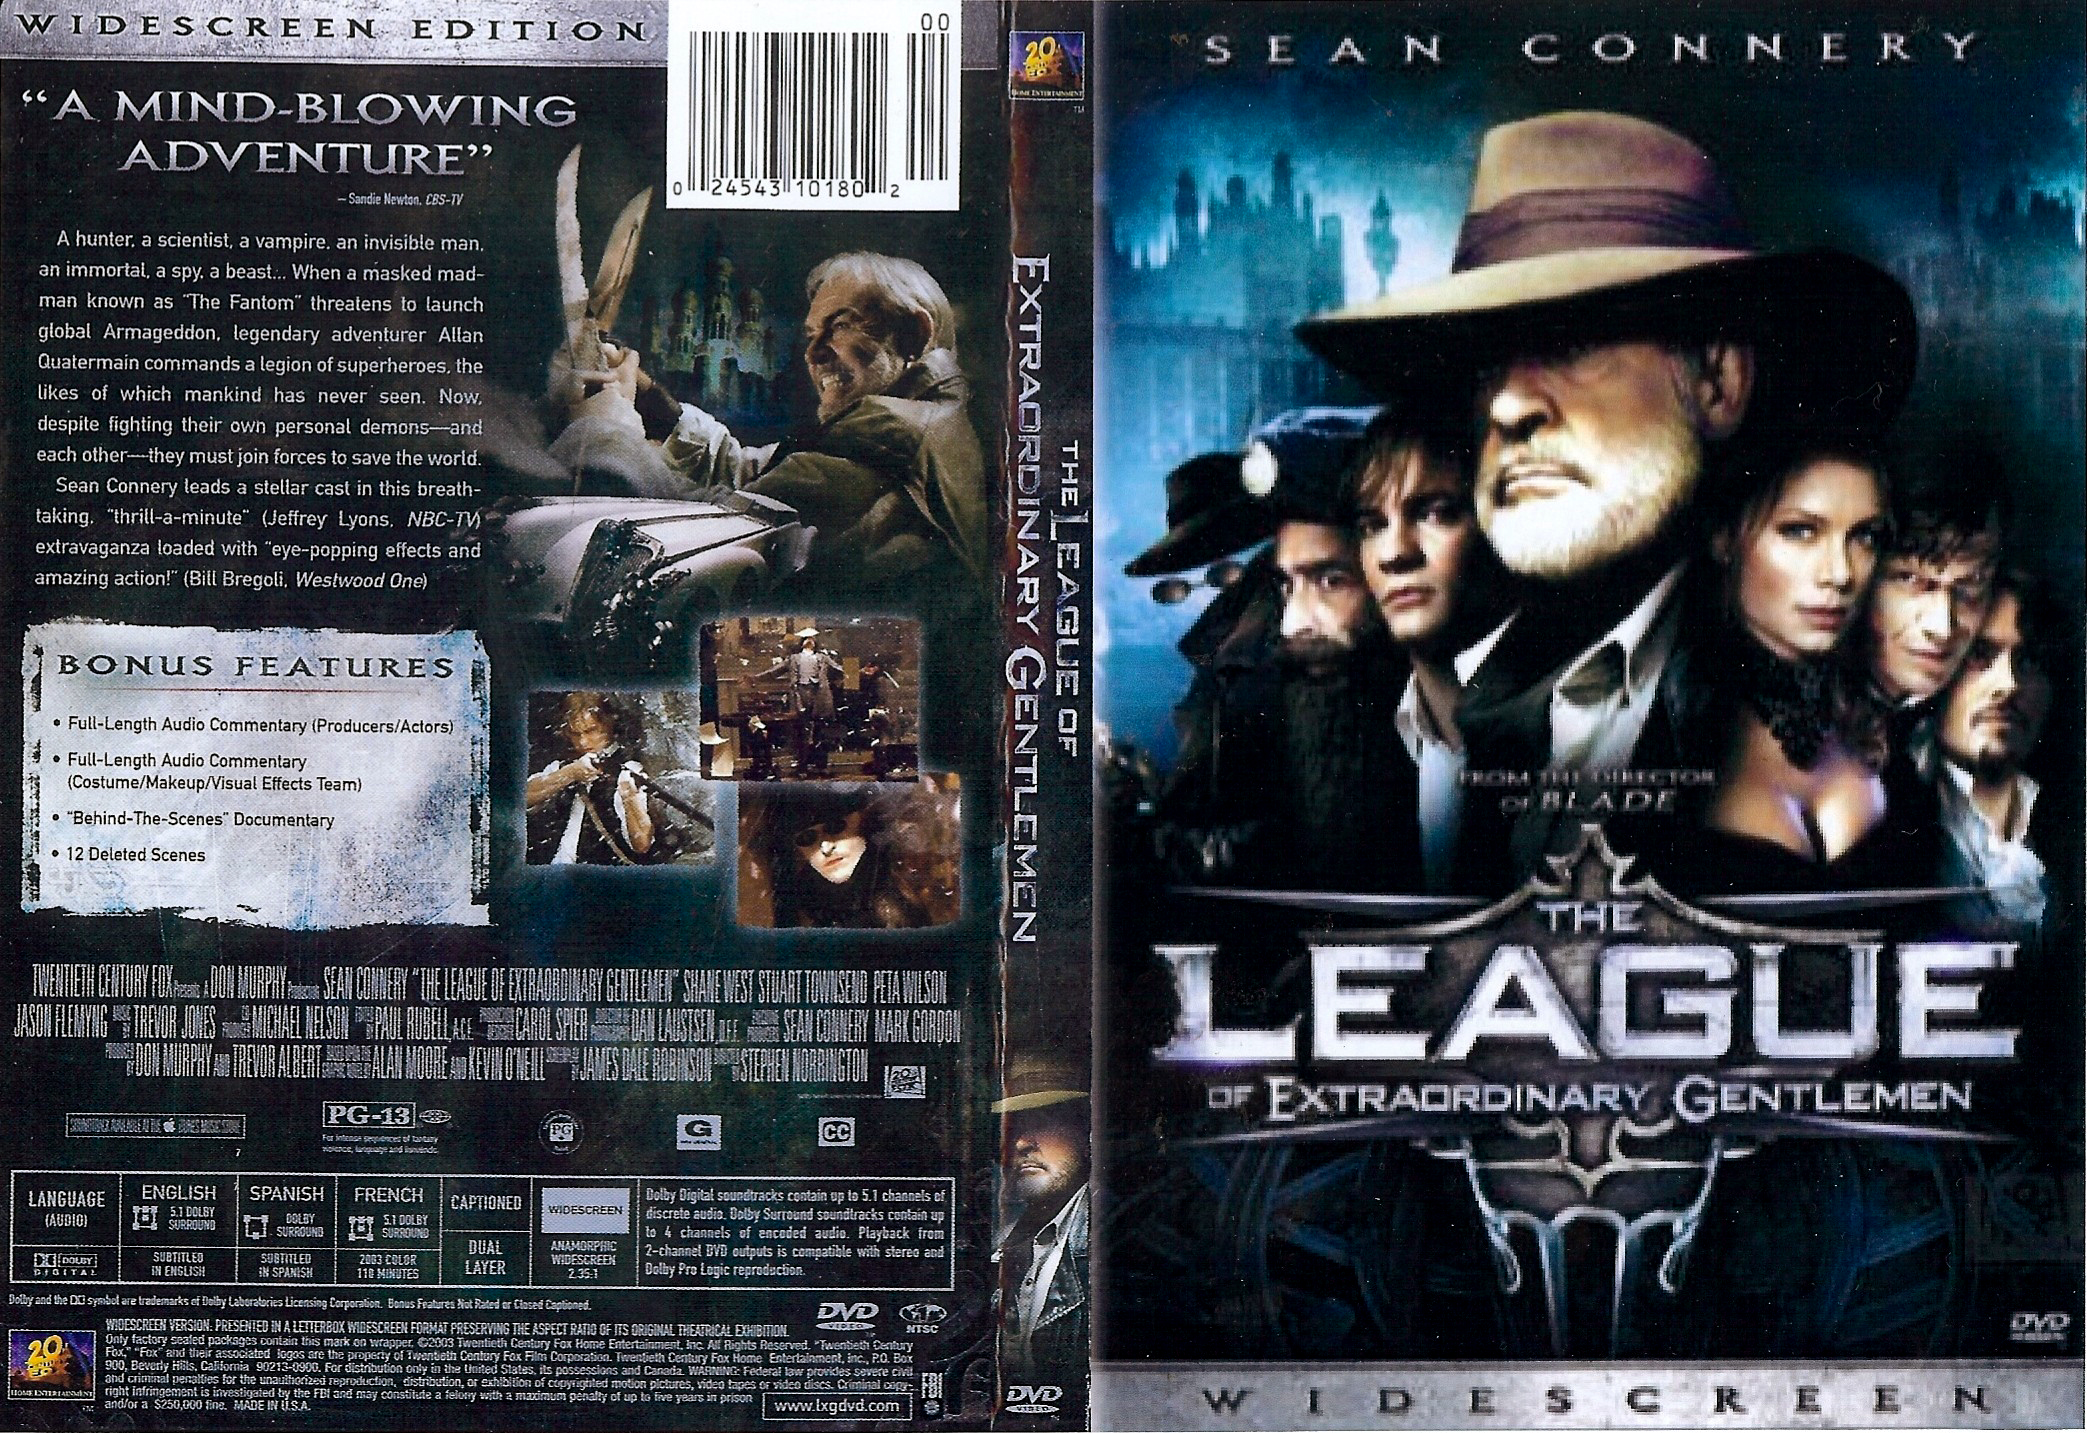 Covers Box Sk The League Of Extraordinary Gentlemen 2003 High Quality Dvd Blueray Movie